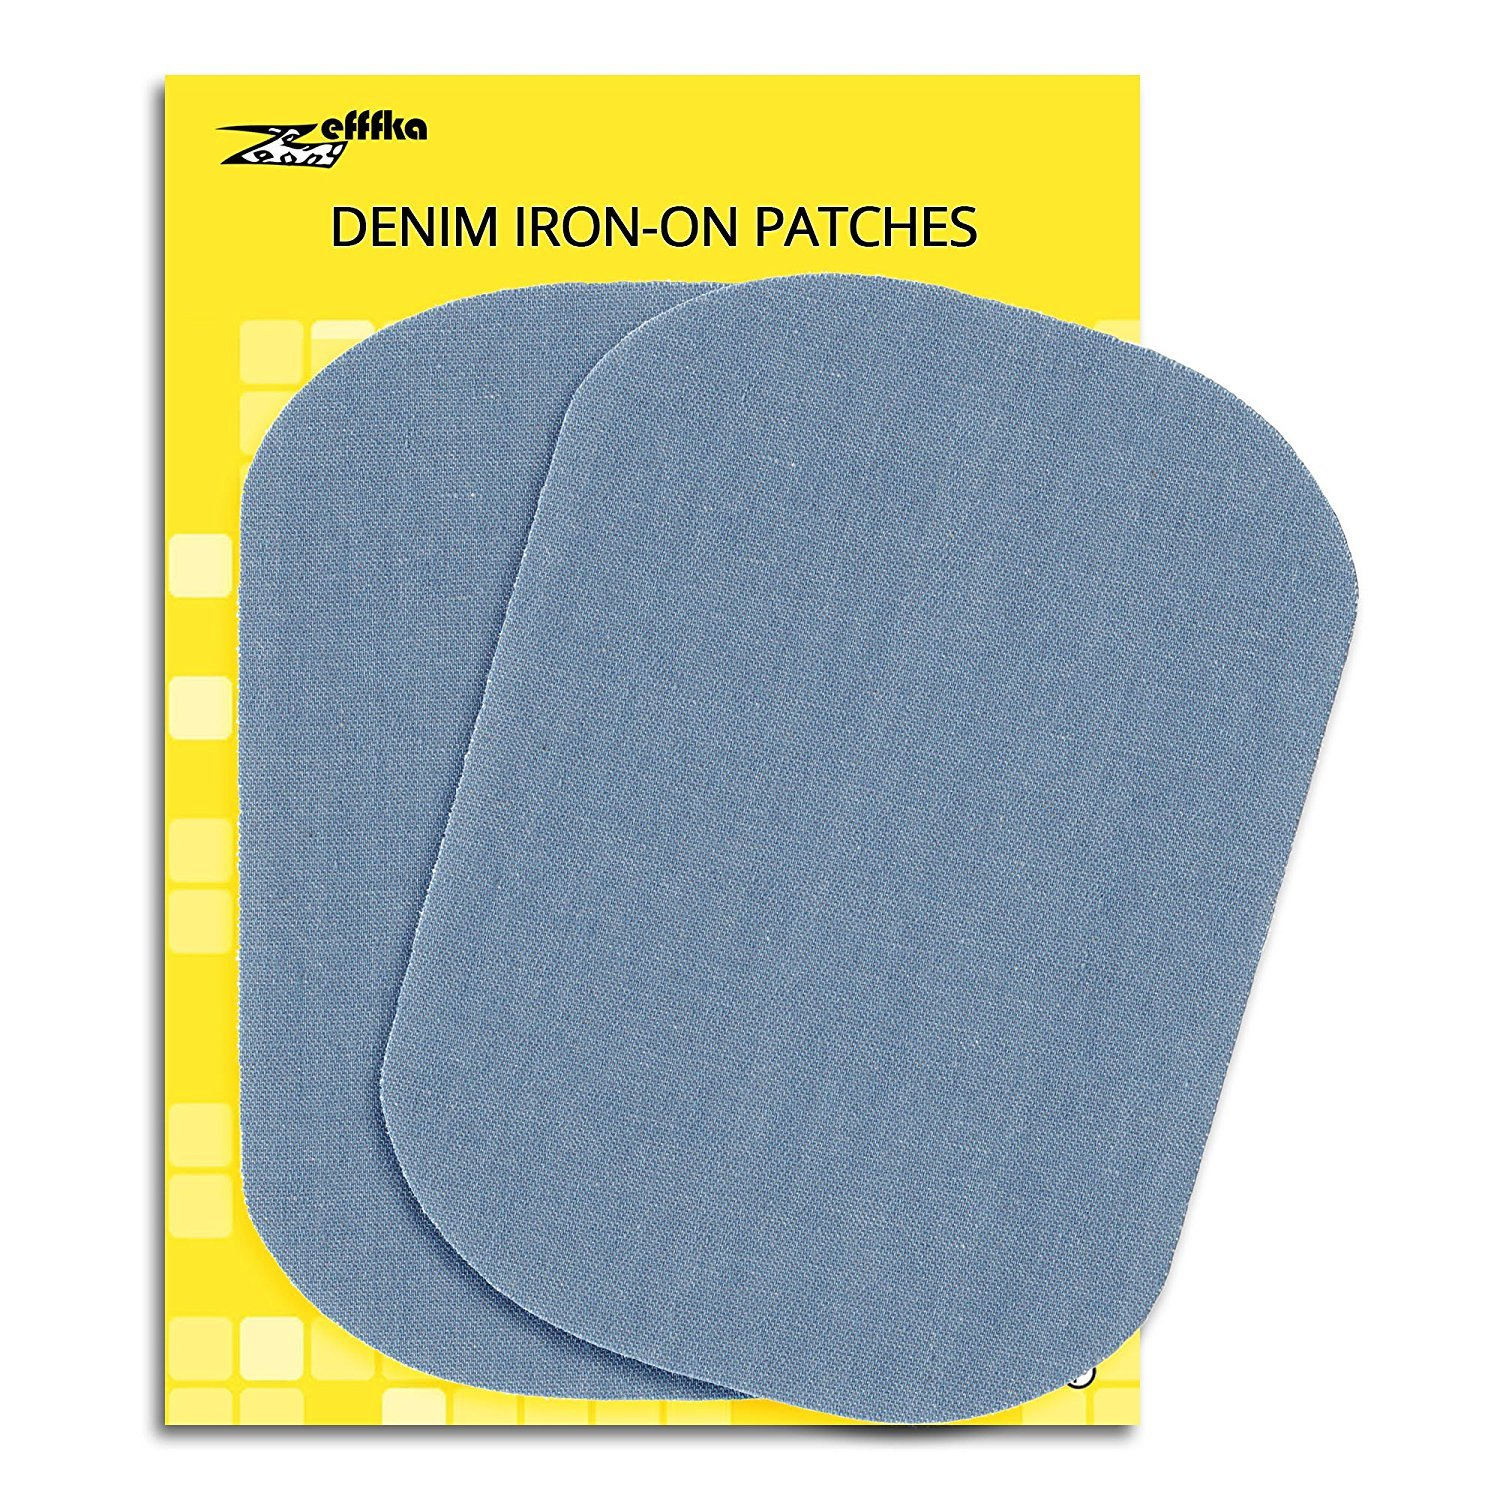 "Zefffka Denim Iron On Jean Patches No-Sew Light Blue 2 Pieces Elbow Knee Cotton Jeans Repair Kit 5"" by 7"""